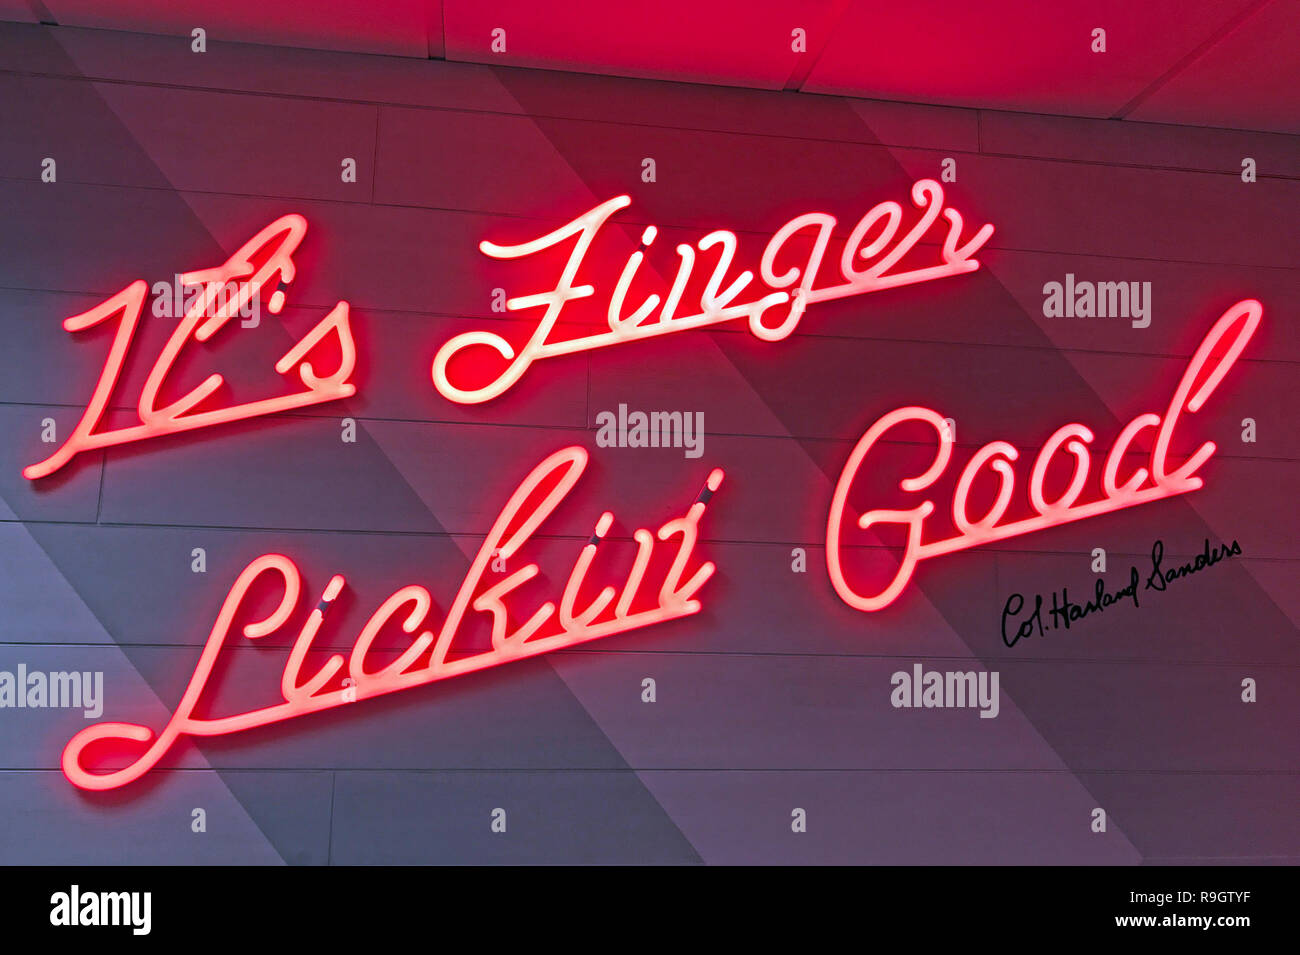 Its Finger Licking Good, Red Neon KFC Logo, Fried Chicken on a wall - Stock Image